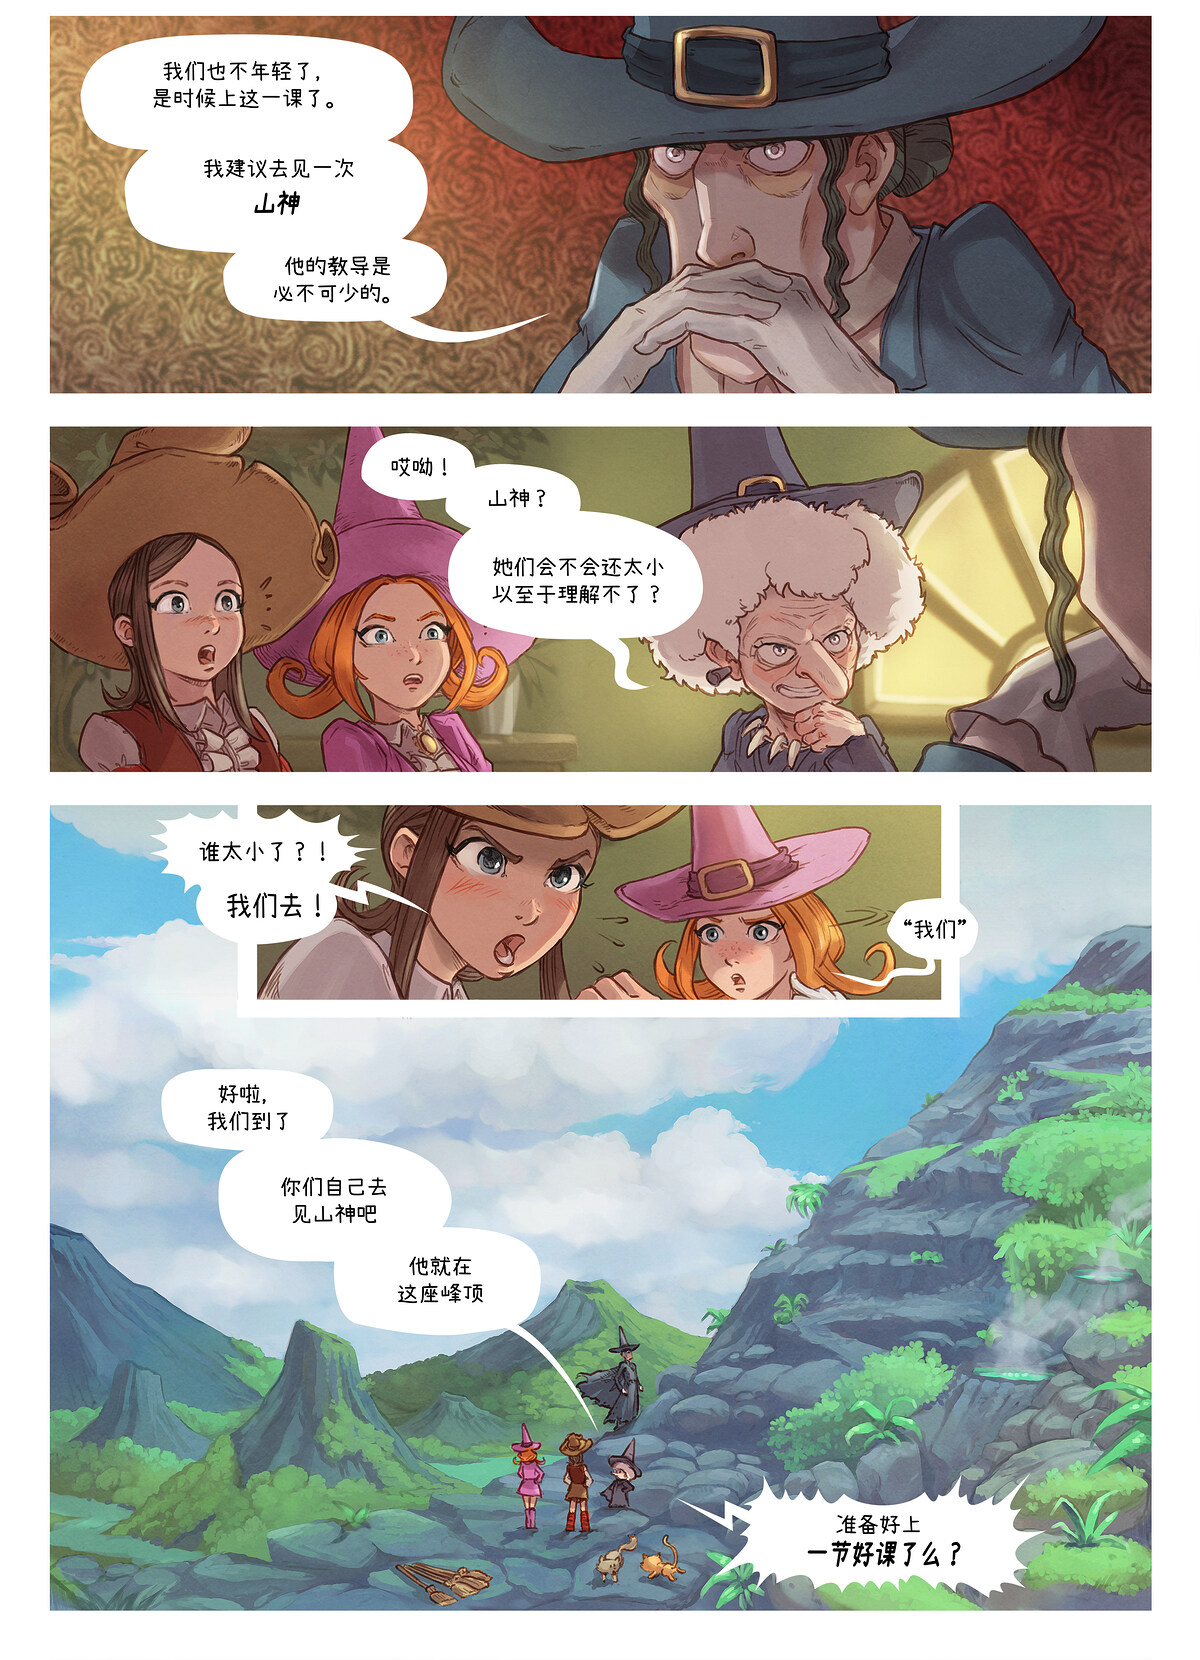 A webcomic page of Pepper&Carrot, 漫画全集 16 [cn], 页面 4